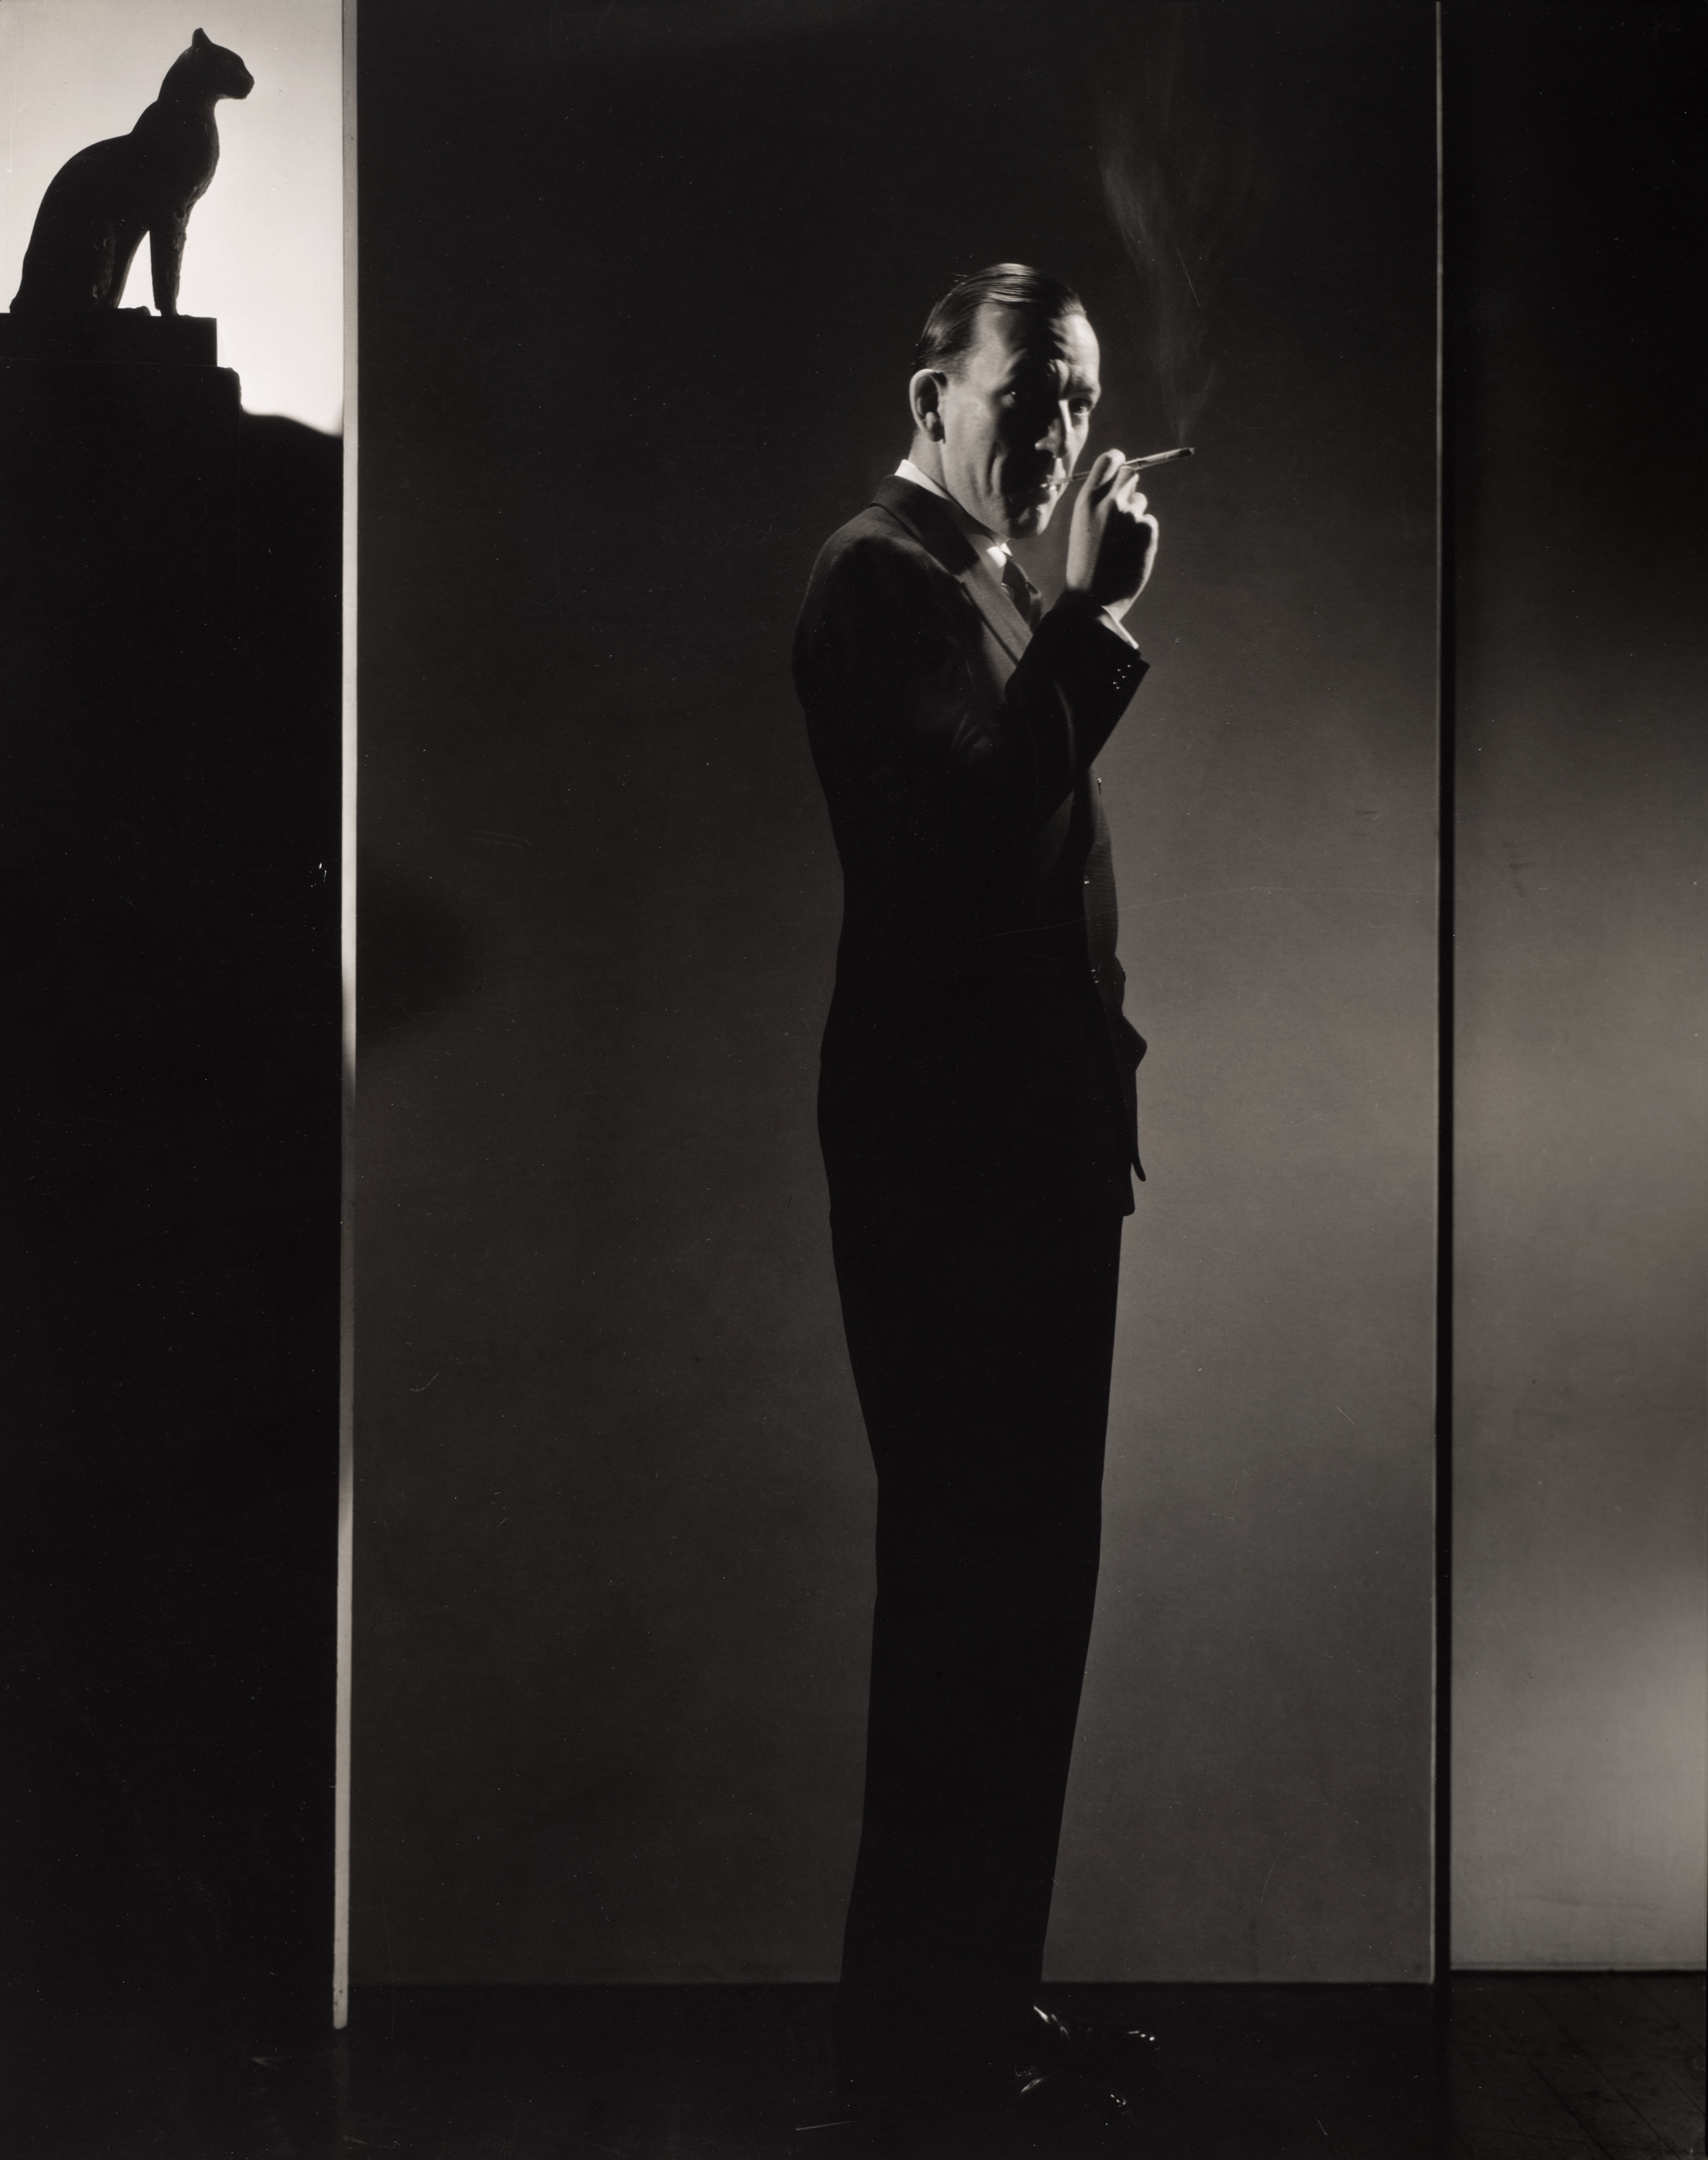 Edward Steichen. Noel Coward, 1932. The Art Institute of Chicago, bequest of Edward Steichen by direction of Joanna T. Steichen and George Eastman House. © 2014 The Estate of Edward Steichen/Artists Rights Society (ARS), New York.